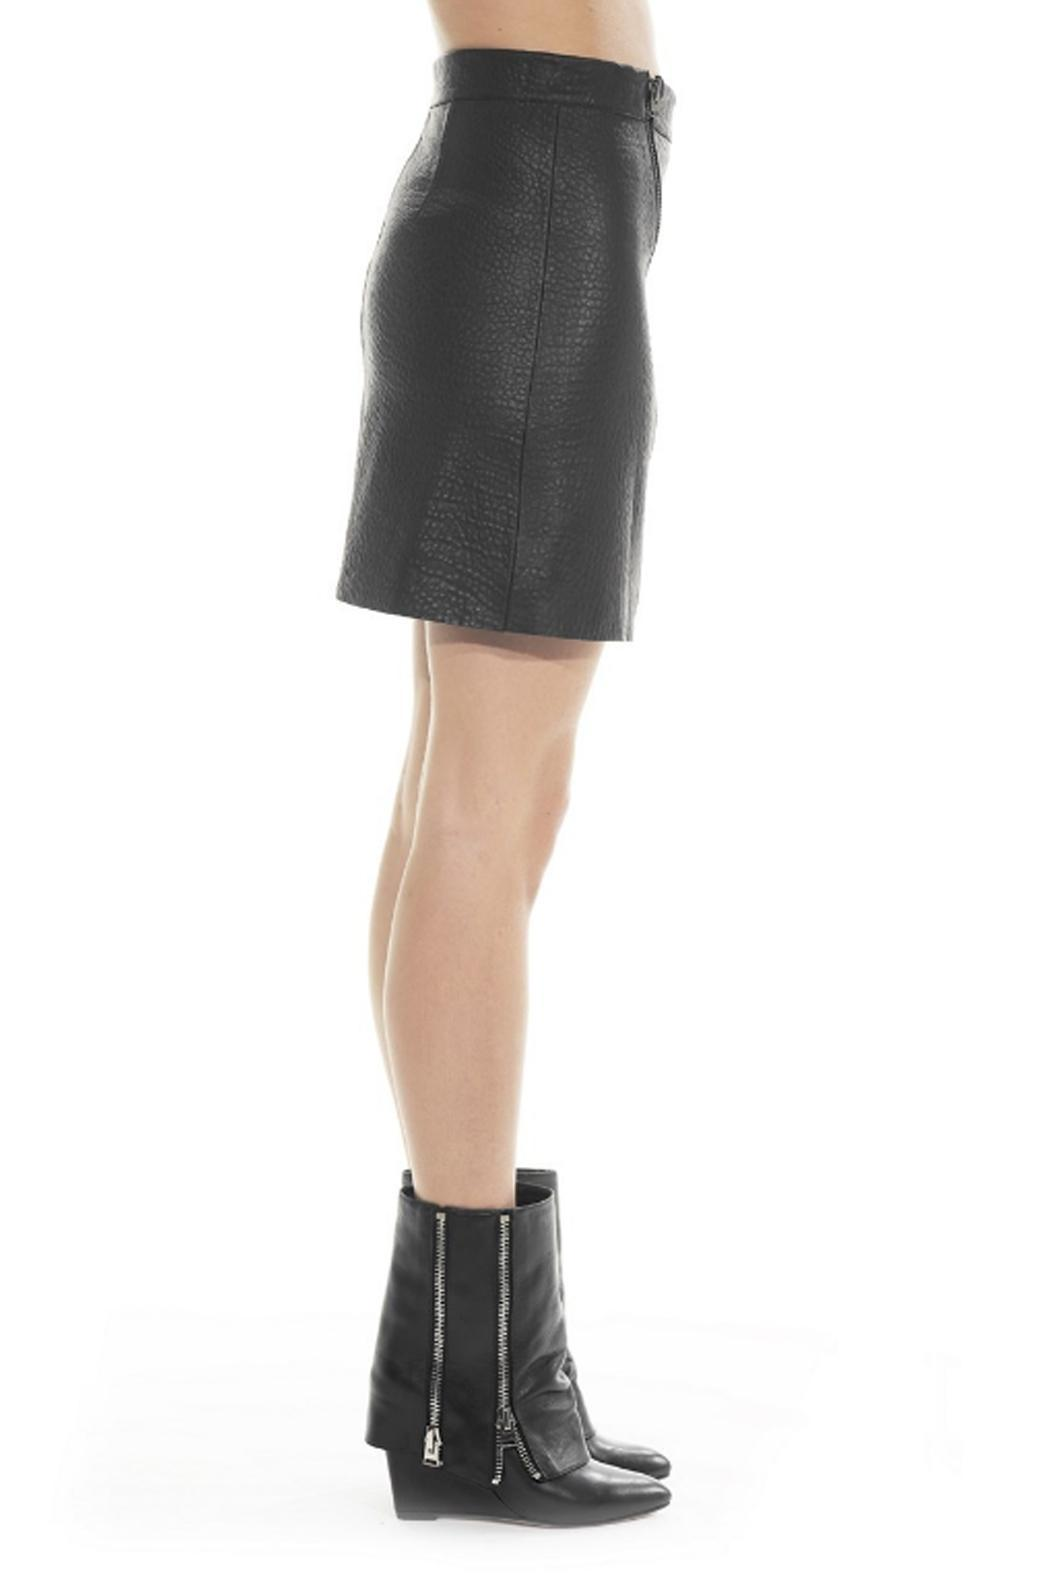 hotel particulier Black Leather Skirt - Front Full Image